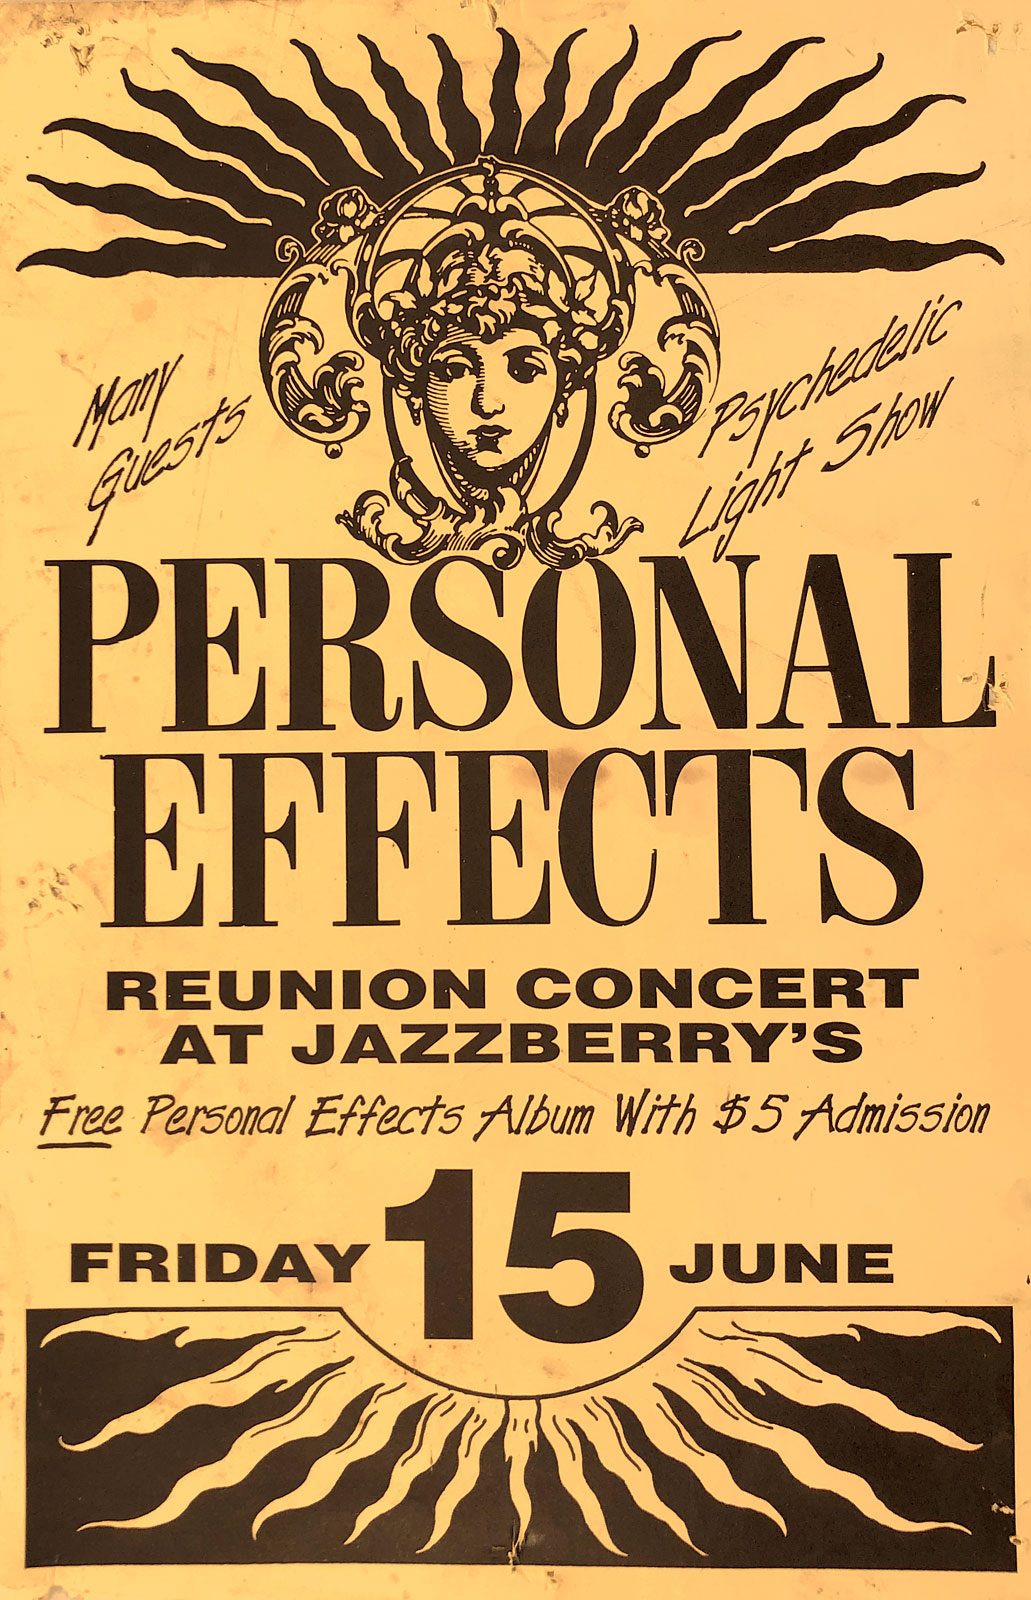 Poster for Personal Effects Reunion Concert at Jazzberry's in Rochester, New York on 06.15.1990